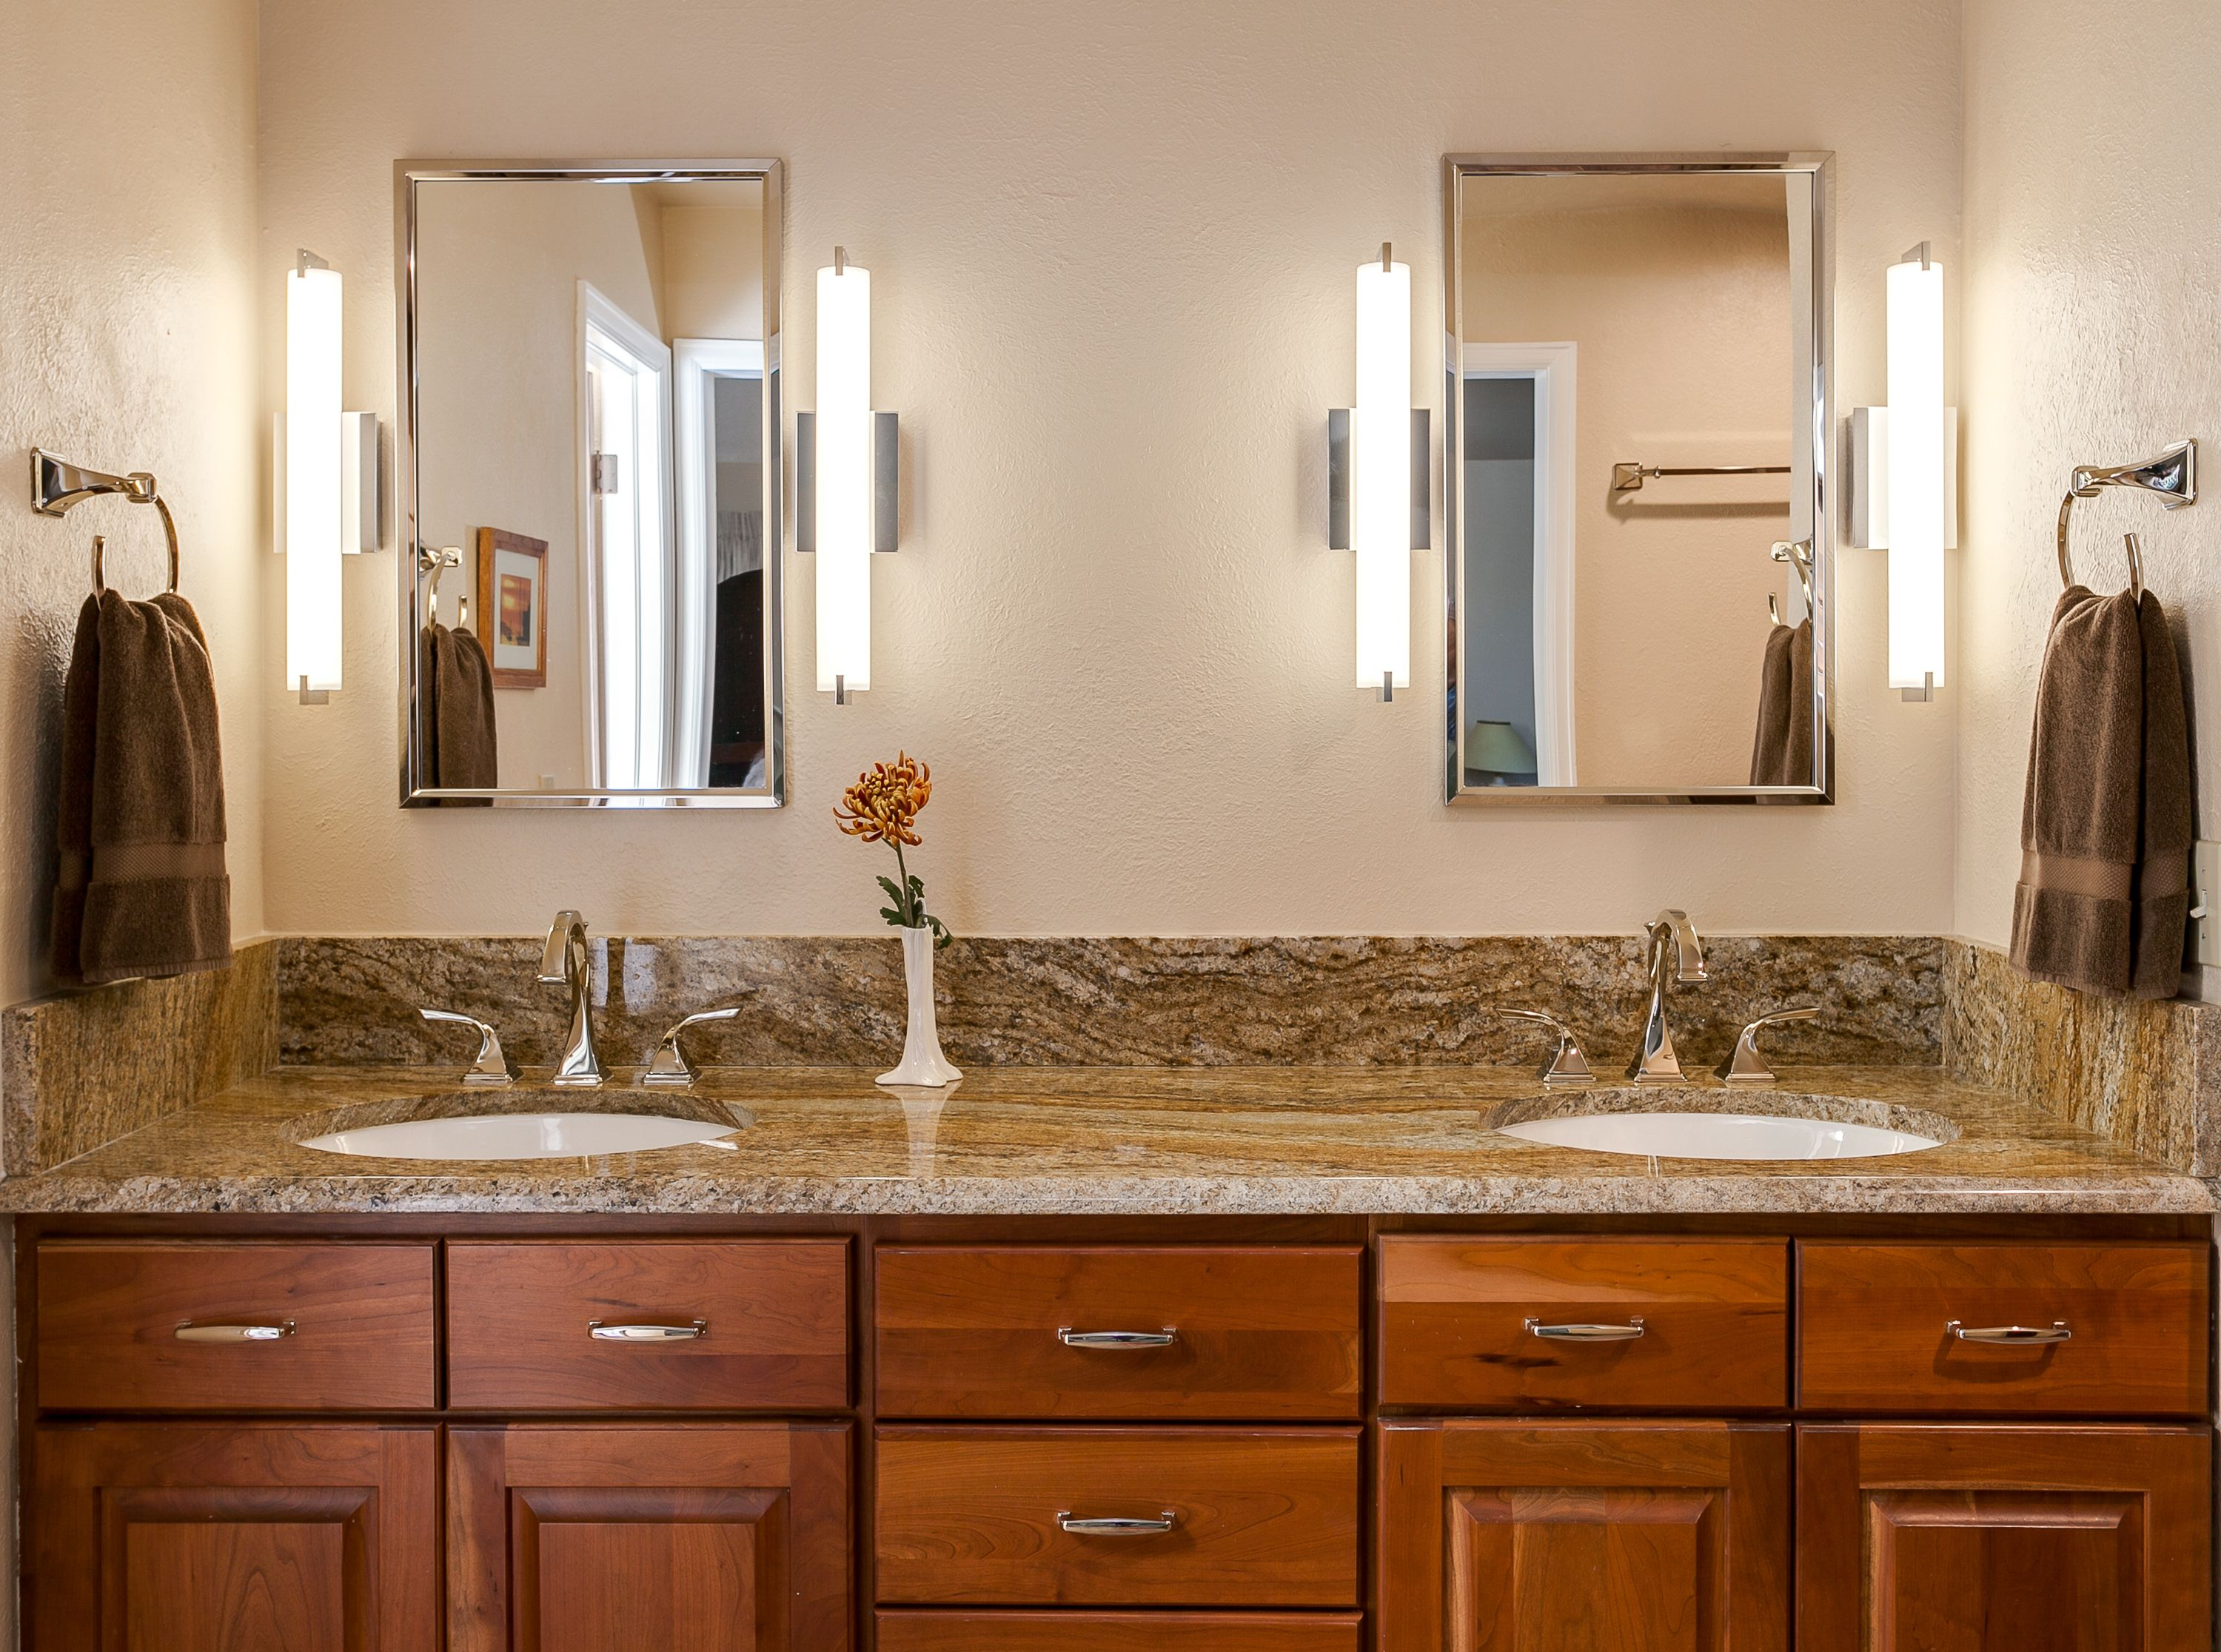 Double Vanity With Semi  Custom Cabinetry Below. #Bathroom #Design #Denver #